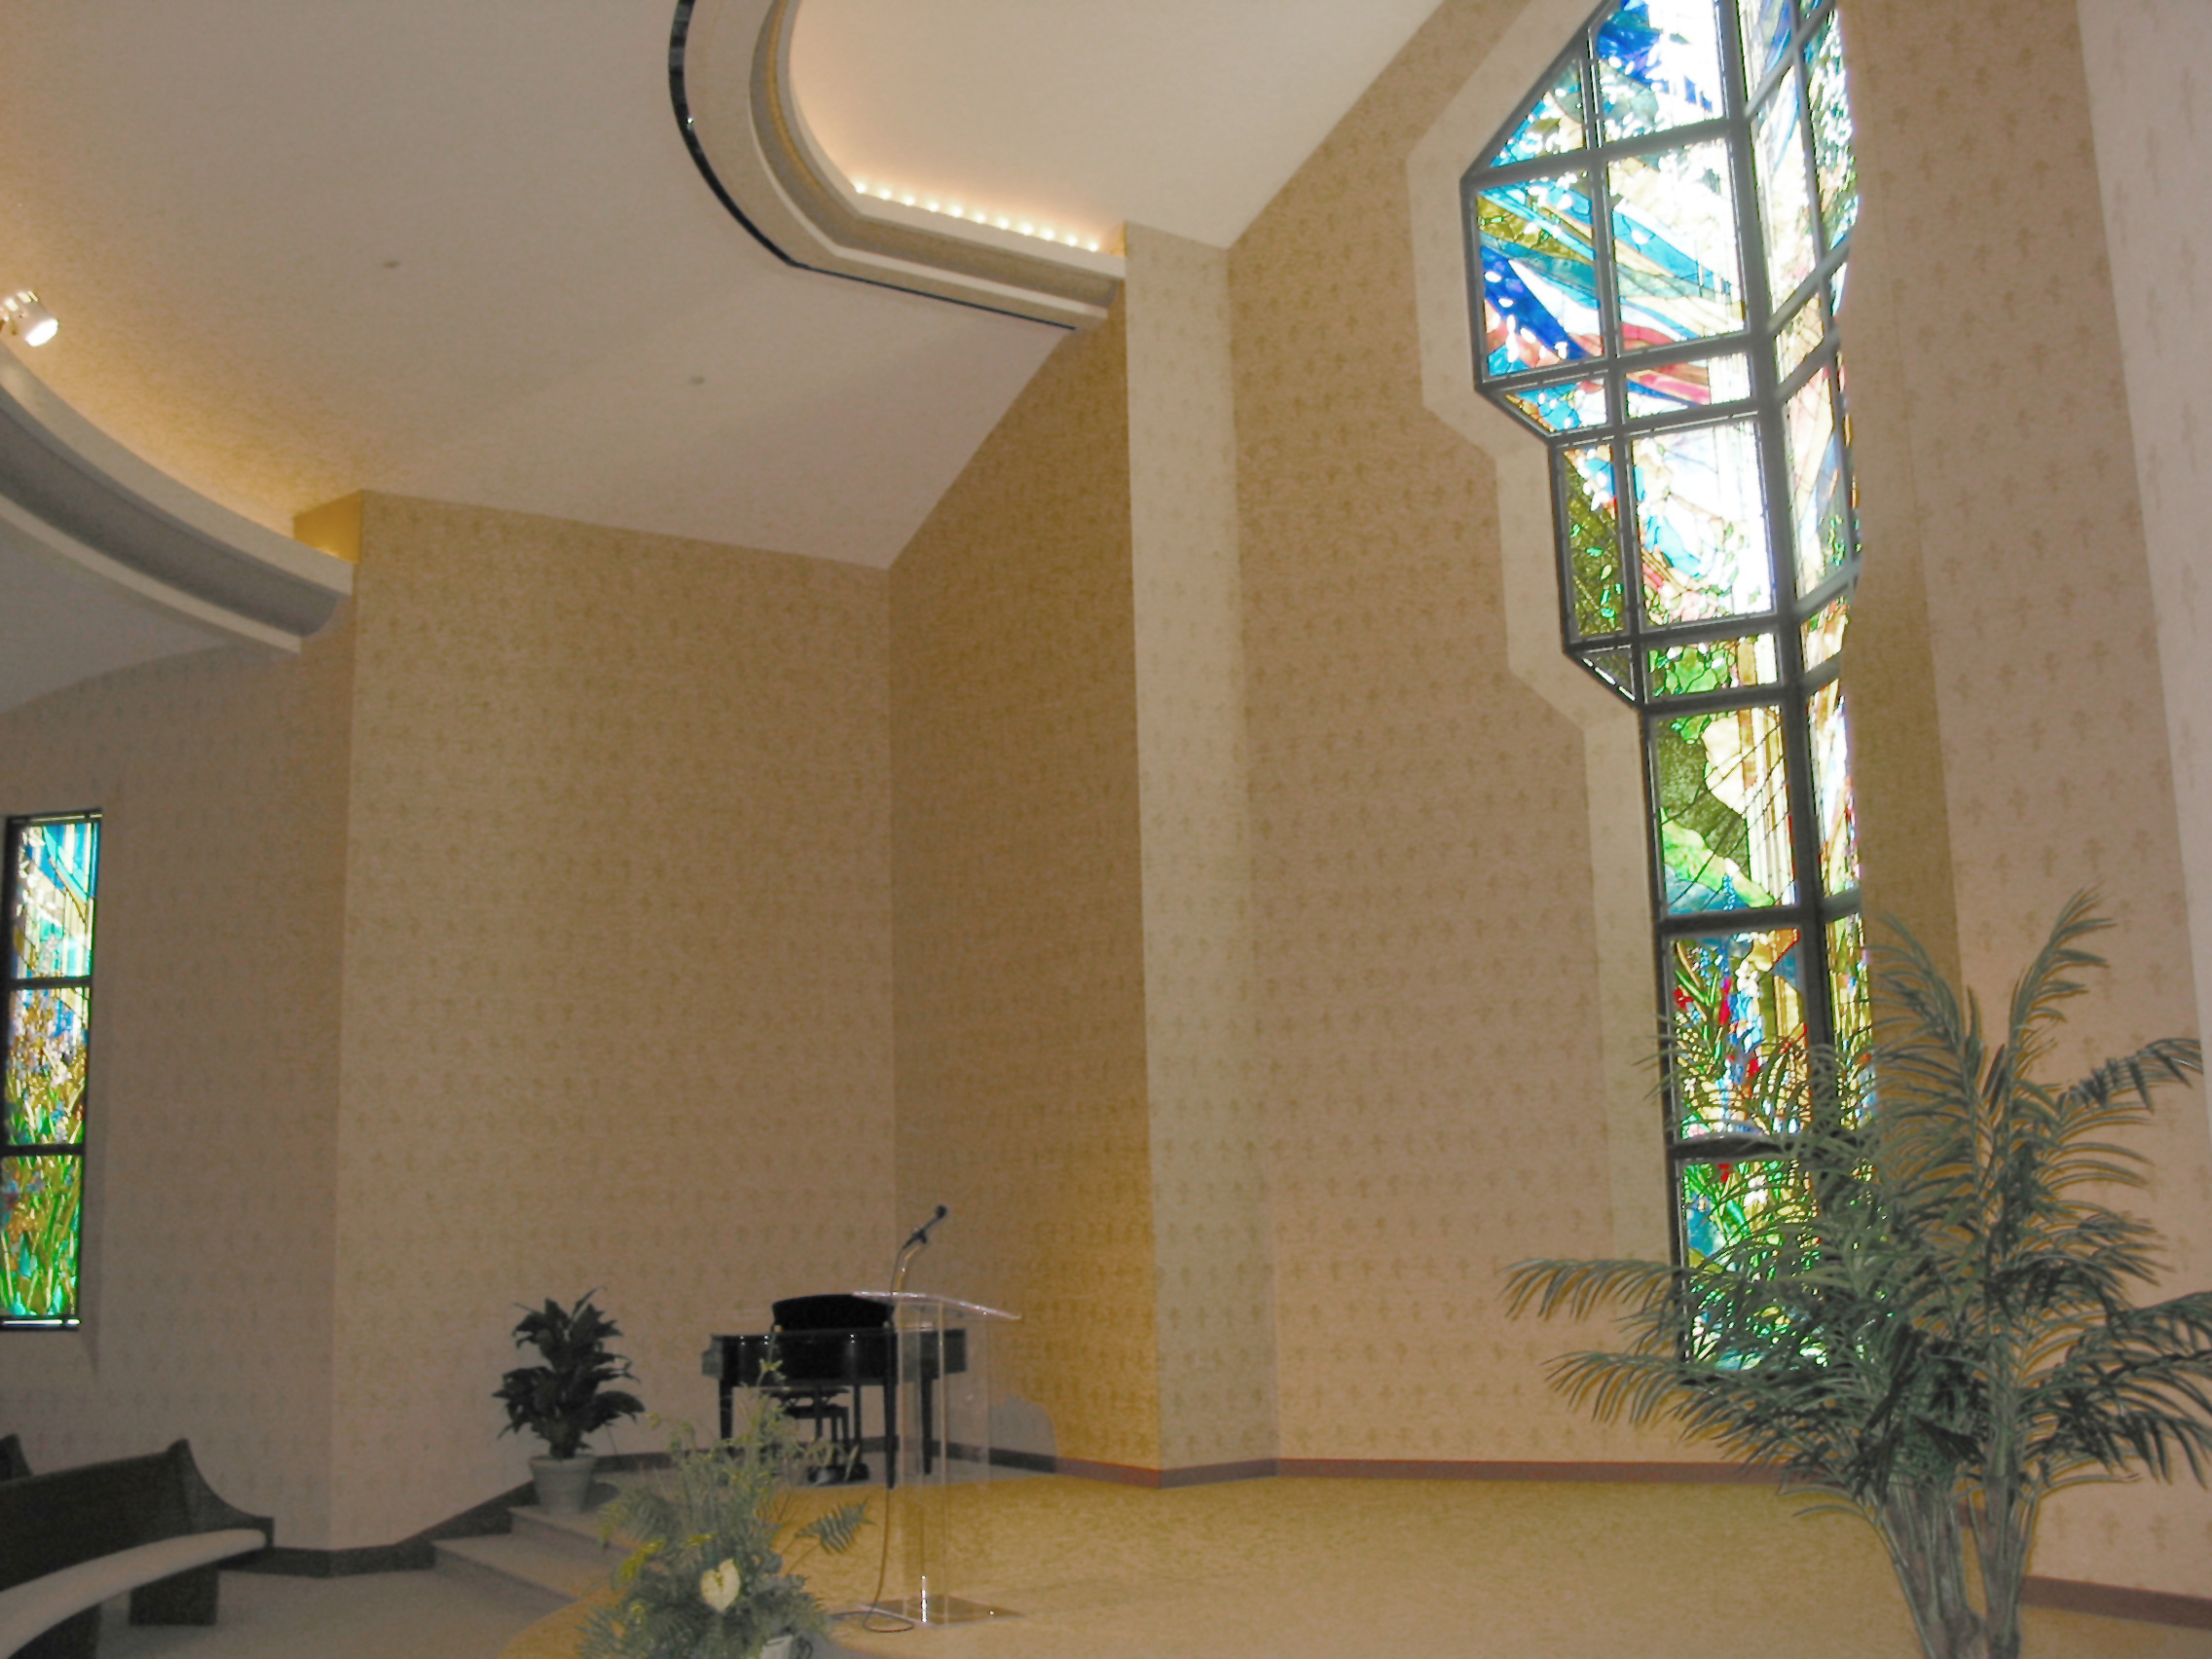 Robertson-Curtis-Commercial-Painting-and-Decorating_PCC-Crowne-Centre-Pensacola-Florida-little-chappel-stained-glass-and-wallpaper-2